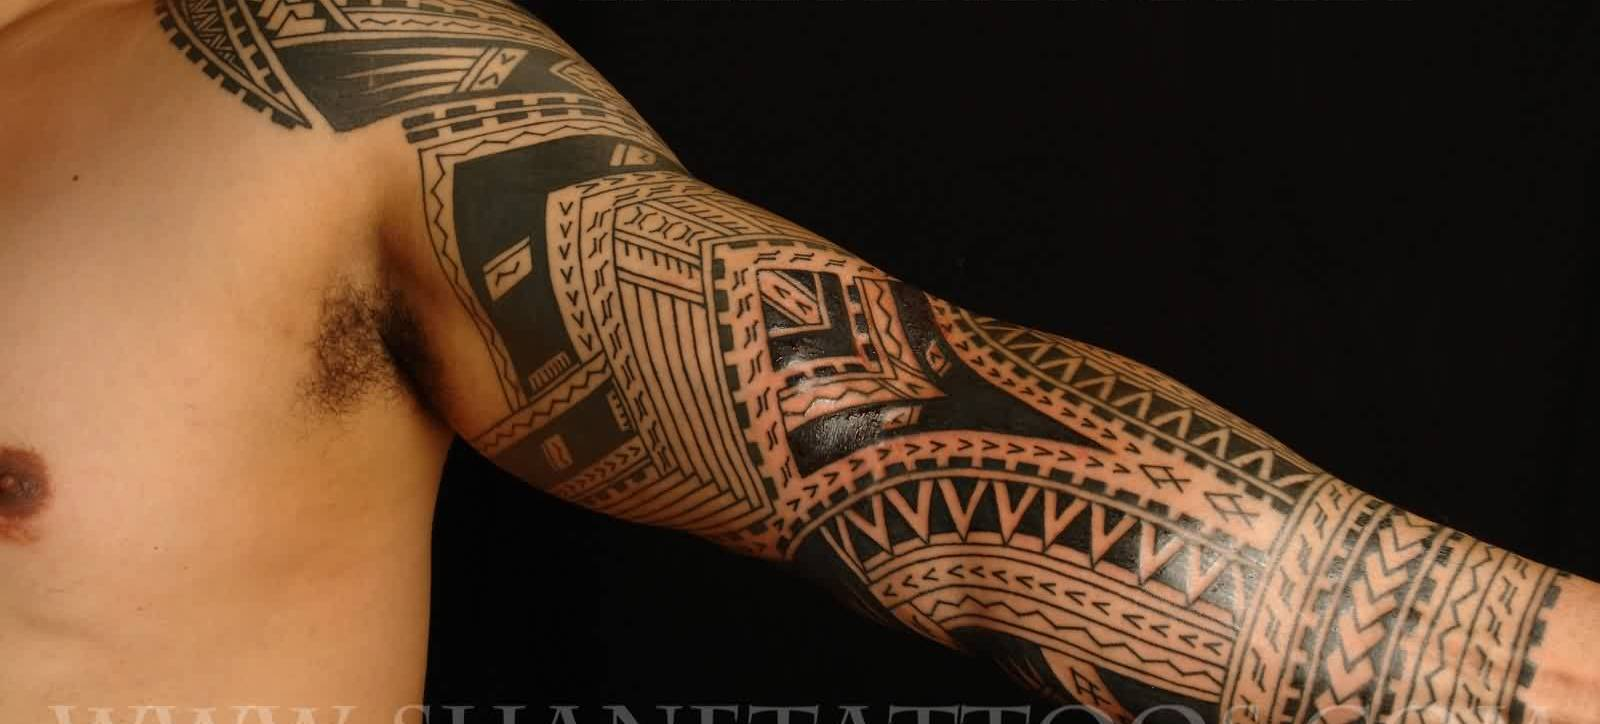 Fresh Triabl Polynesian Tattoo For Sleeve